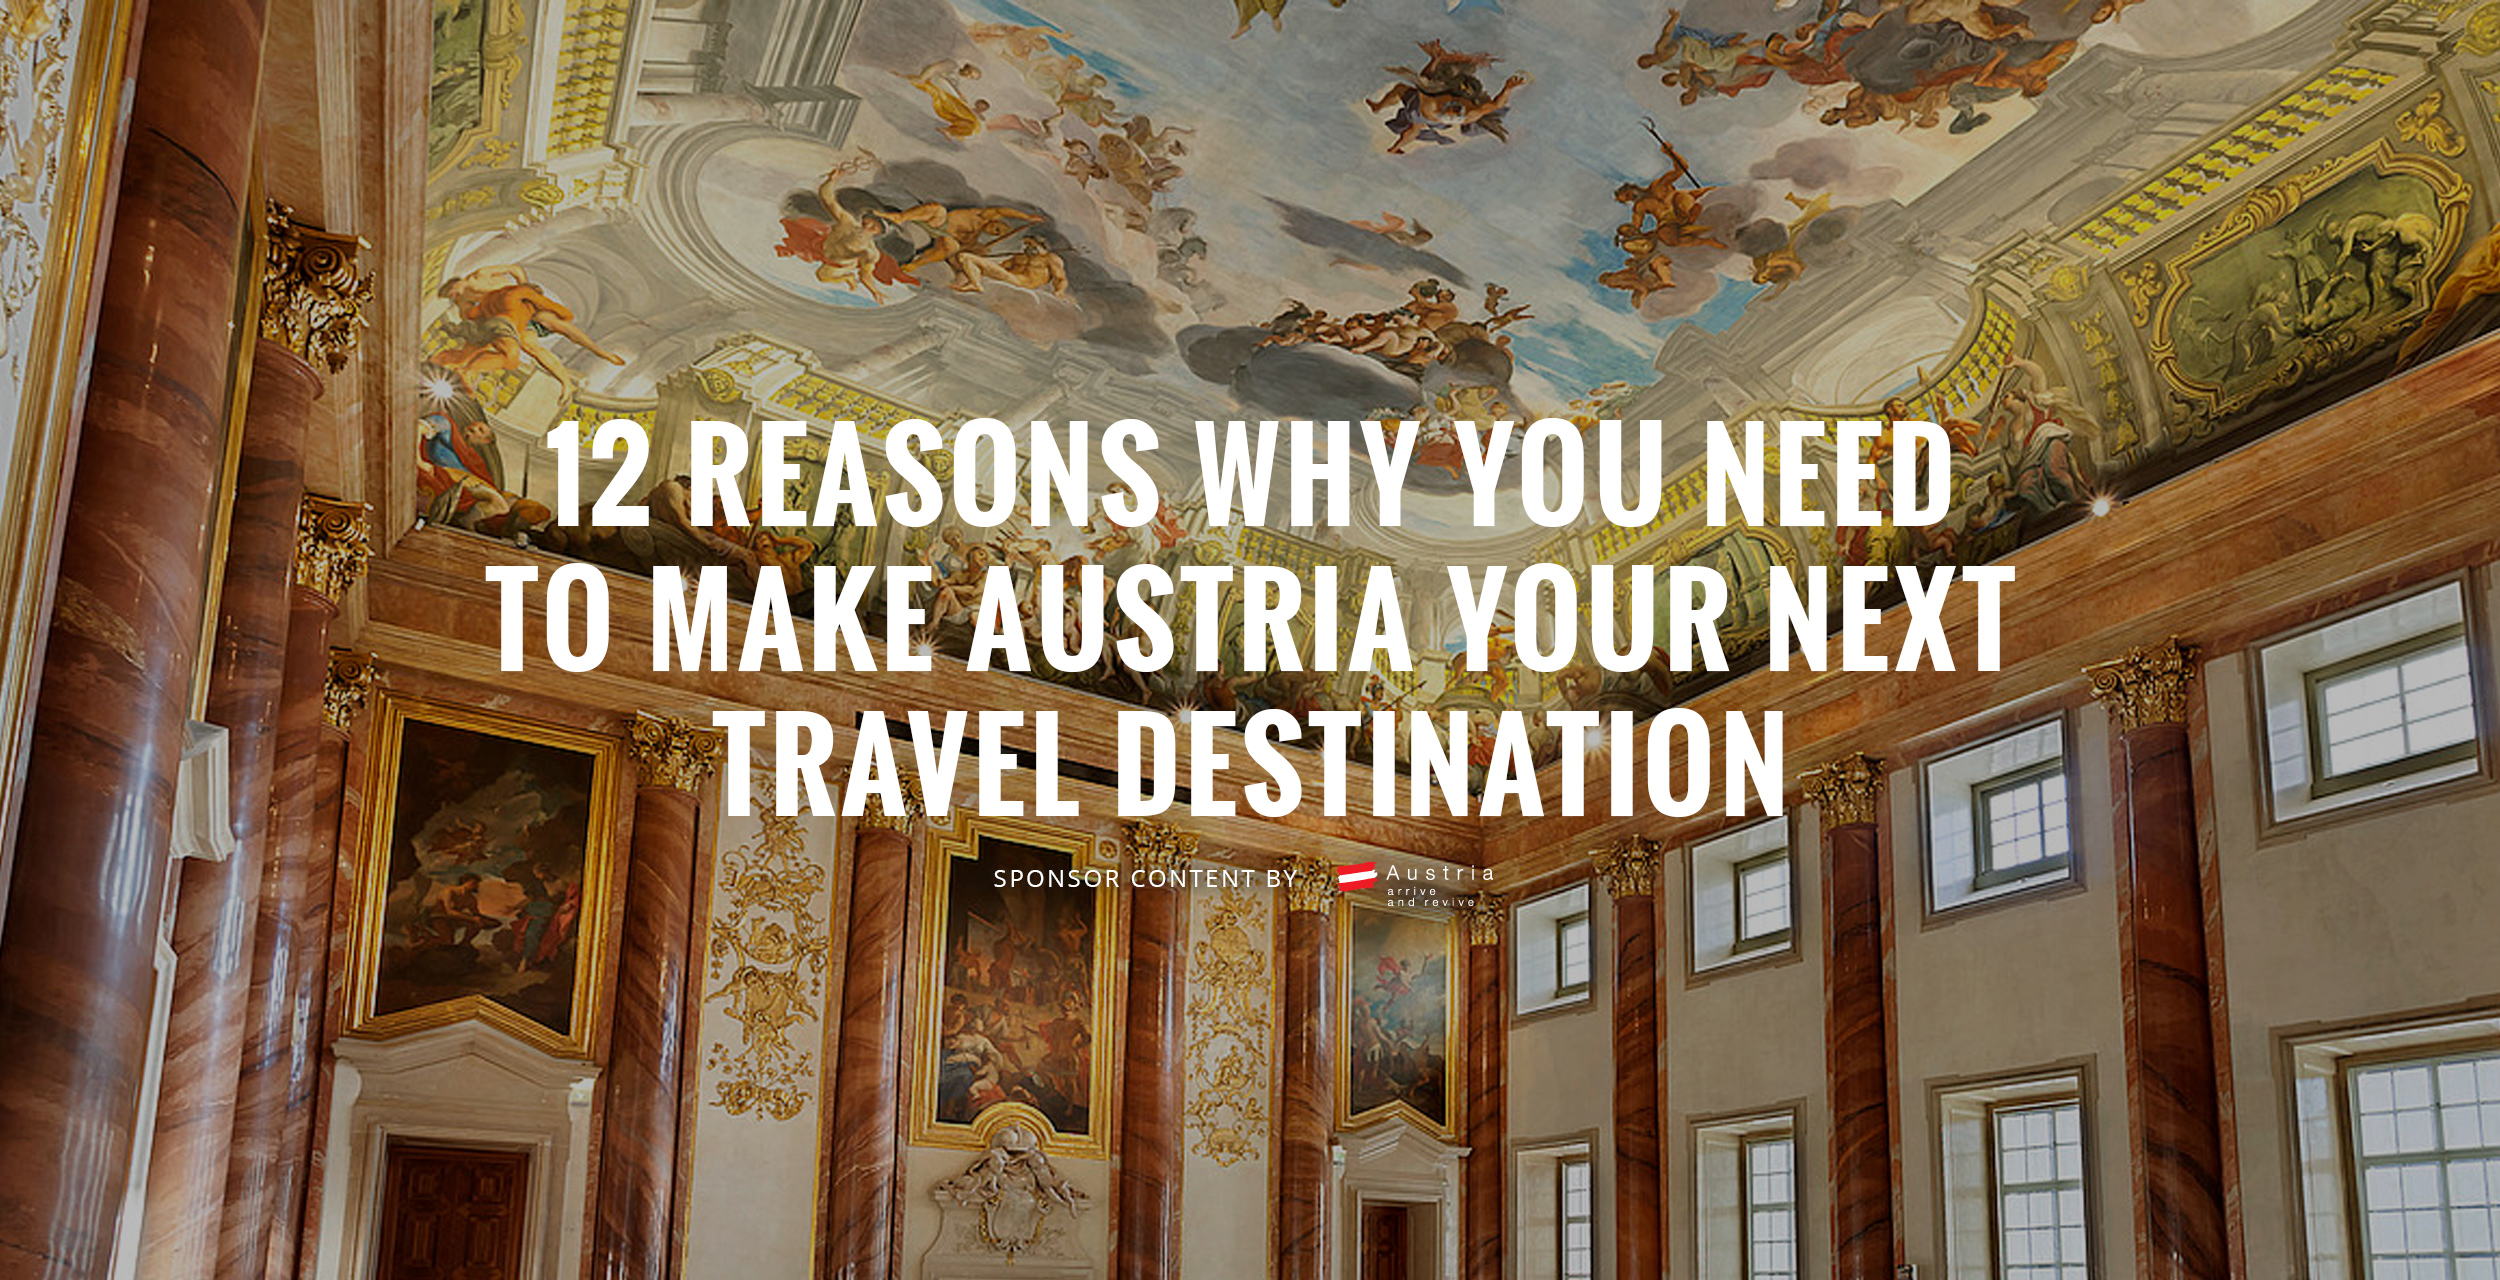 12 Reasons Why You Need to Make Austria Your Next Travel